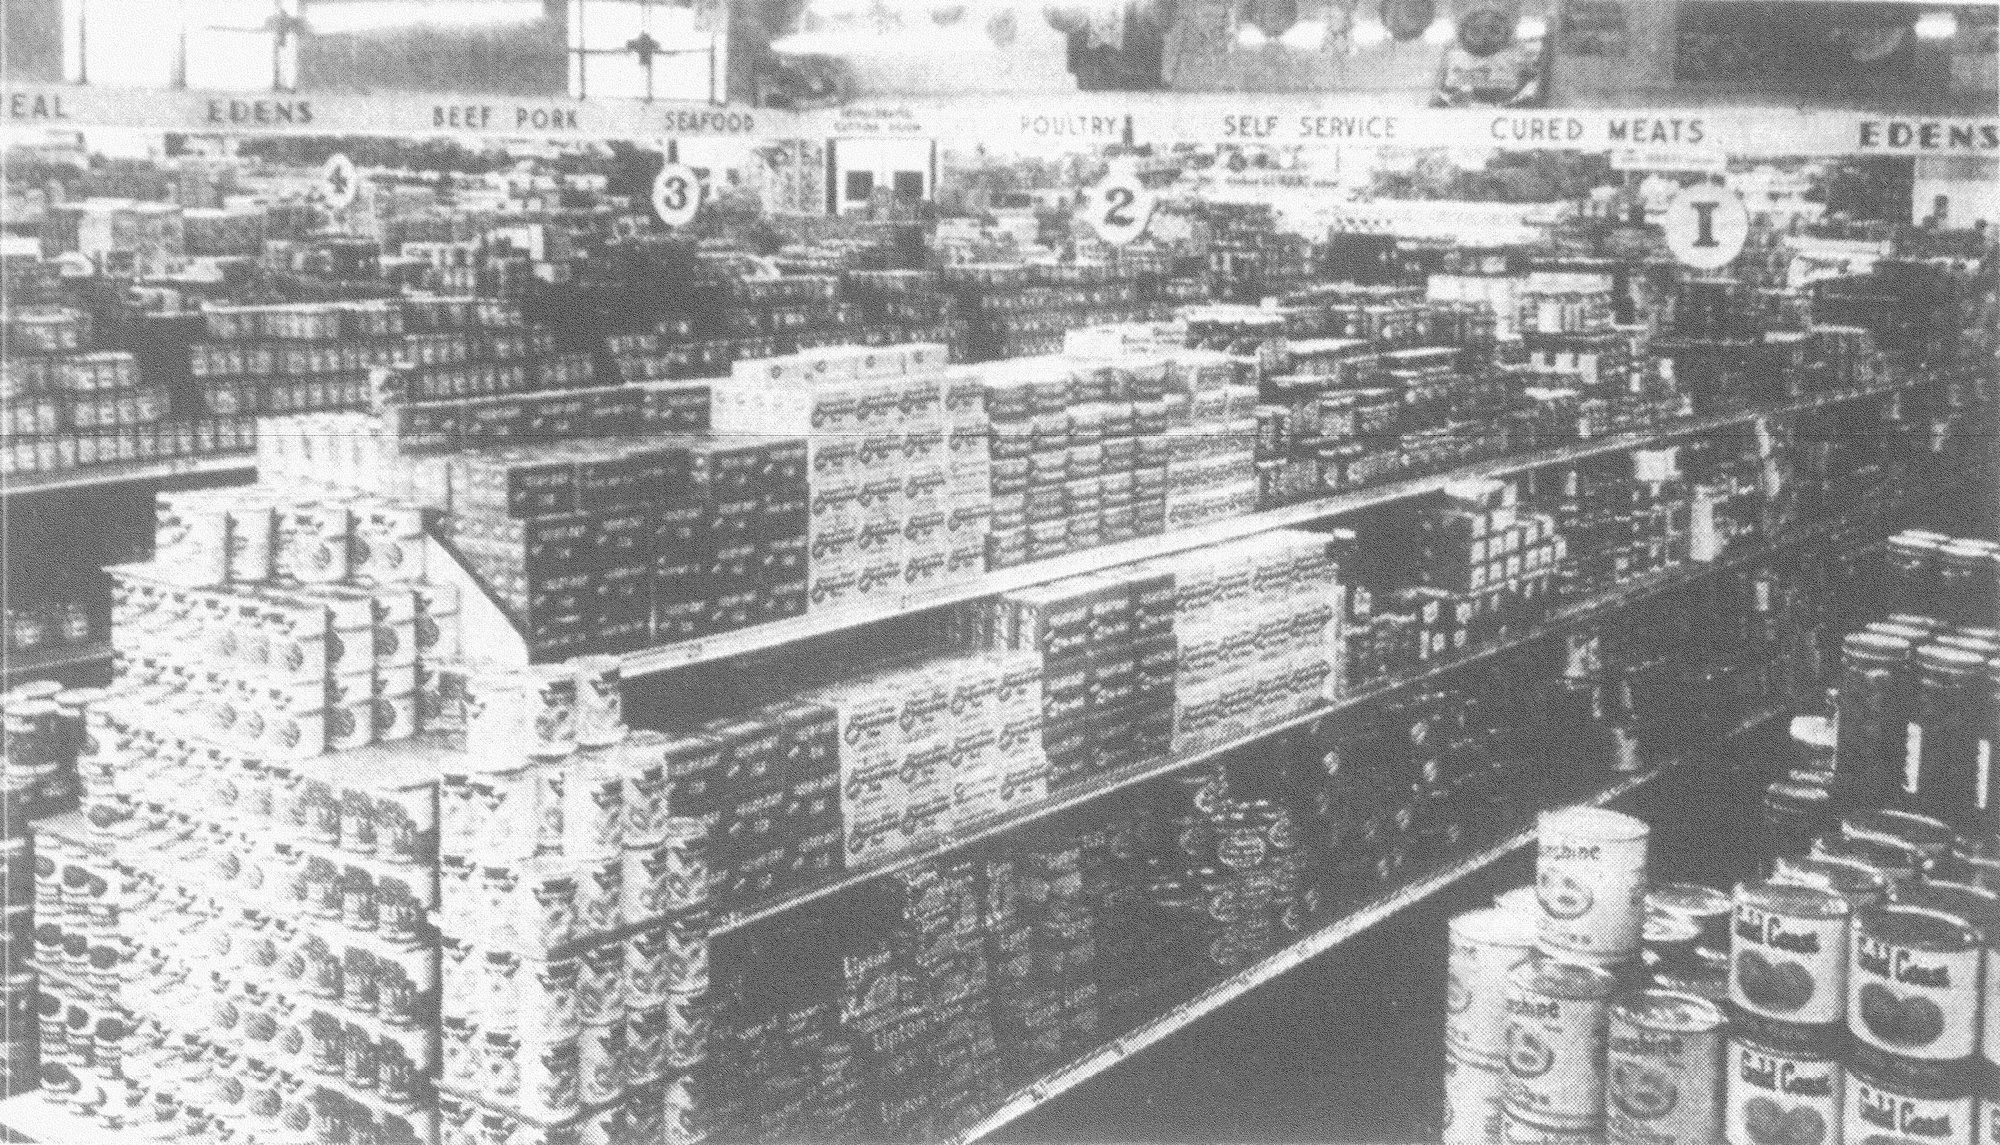 The interior of the newly remodeled Edens Food Store at Sumter and Dugan streets is seen in February 1954.